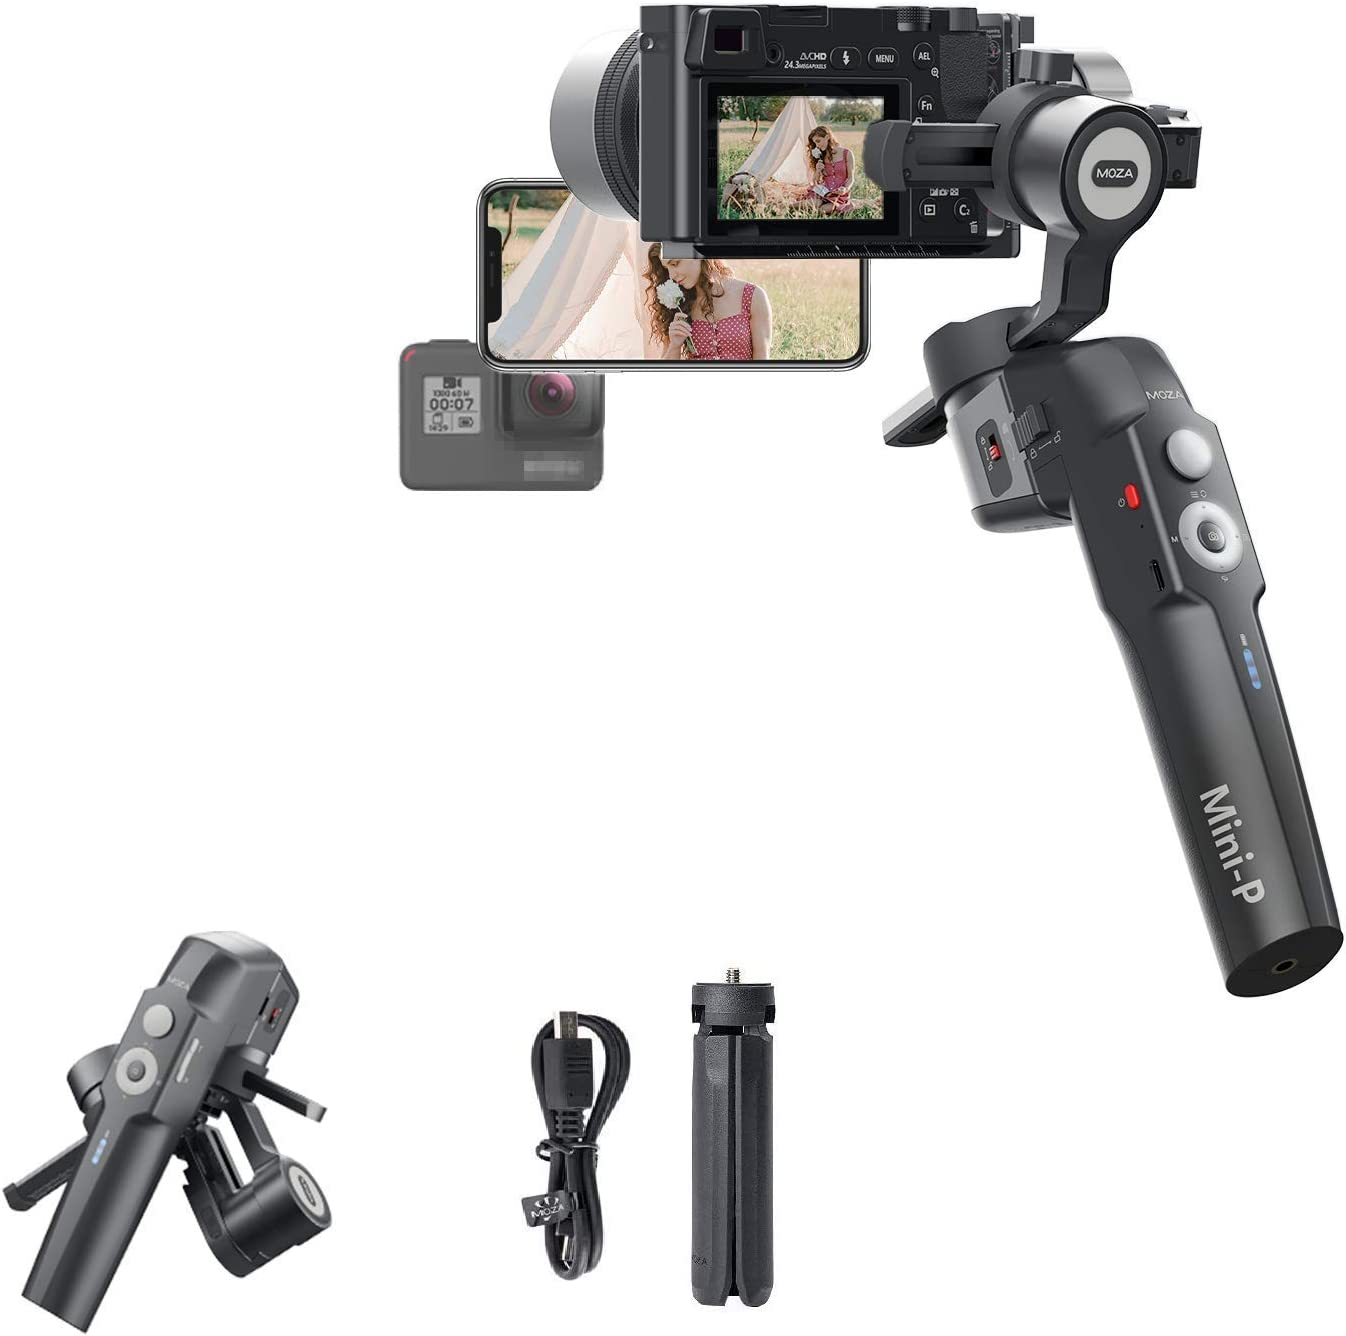 Amazon Promo Code for 3-Axis Gimbal Foldable Stabilizer